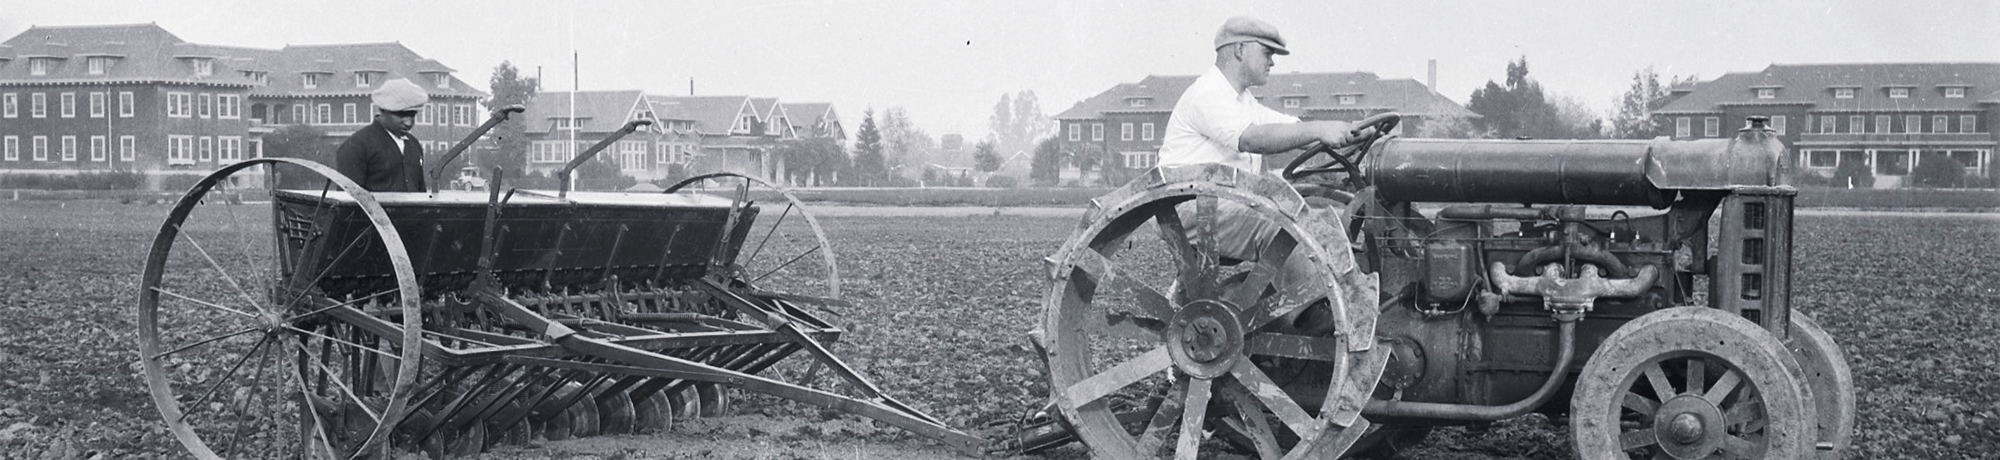 A tractor with a tiller attachment plows a field